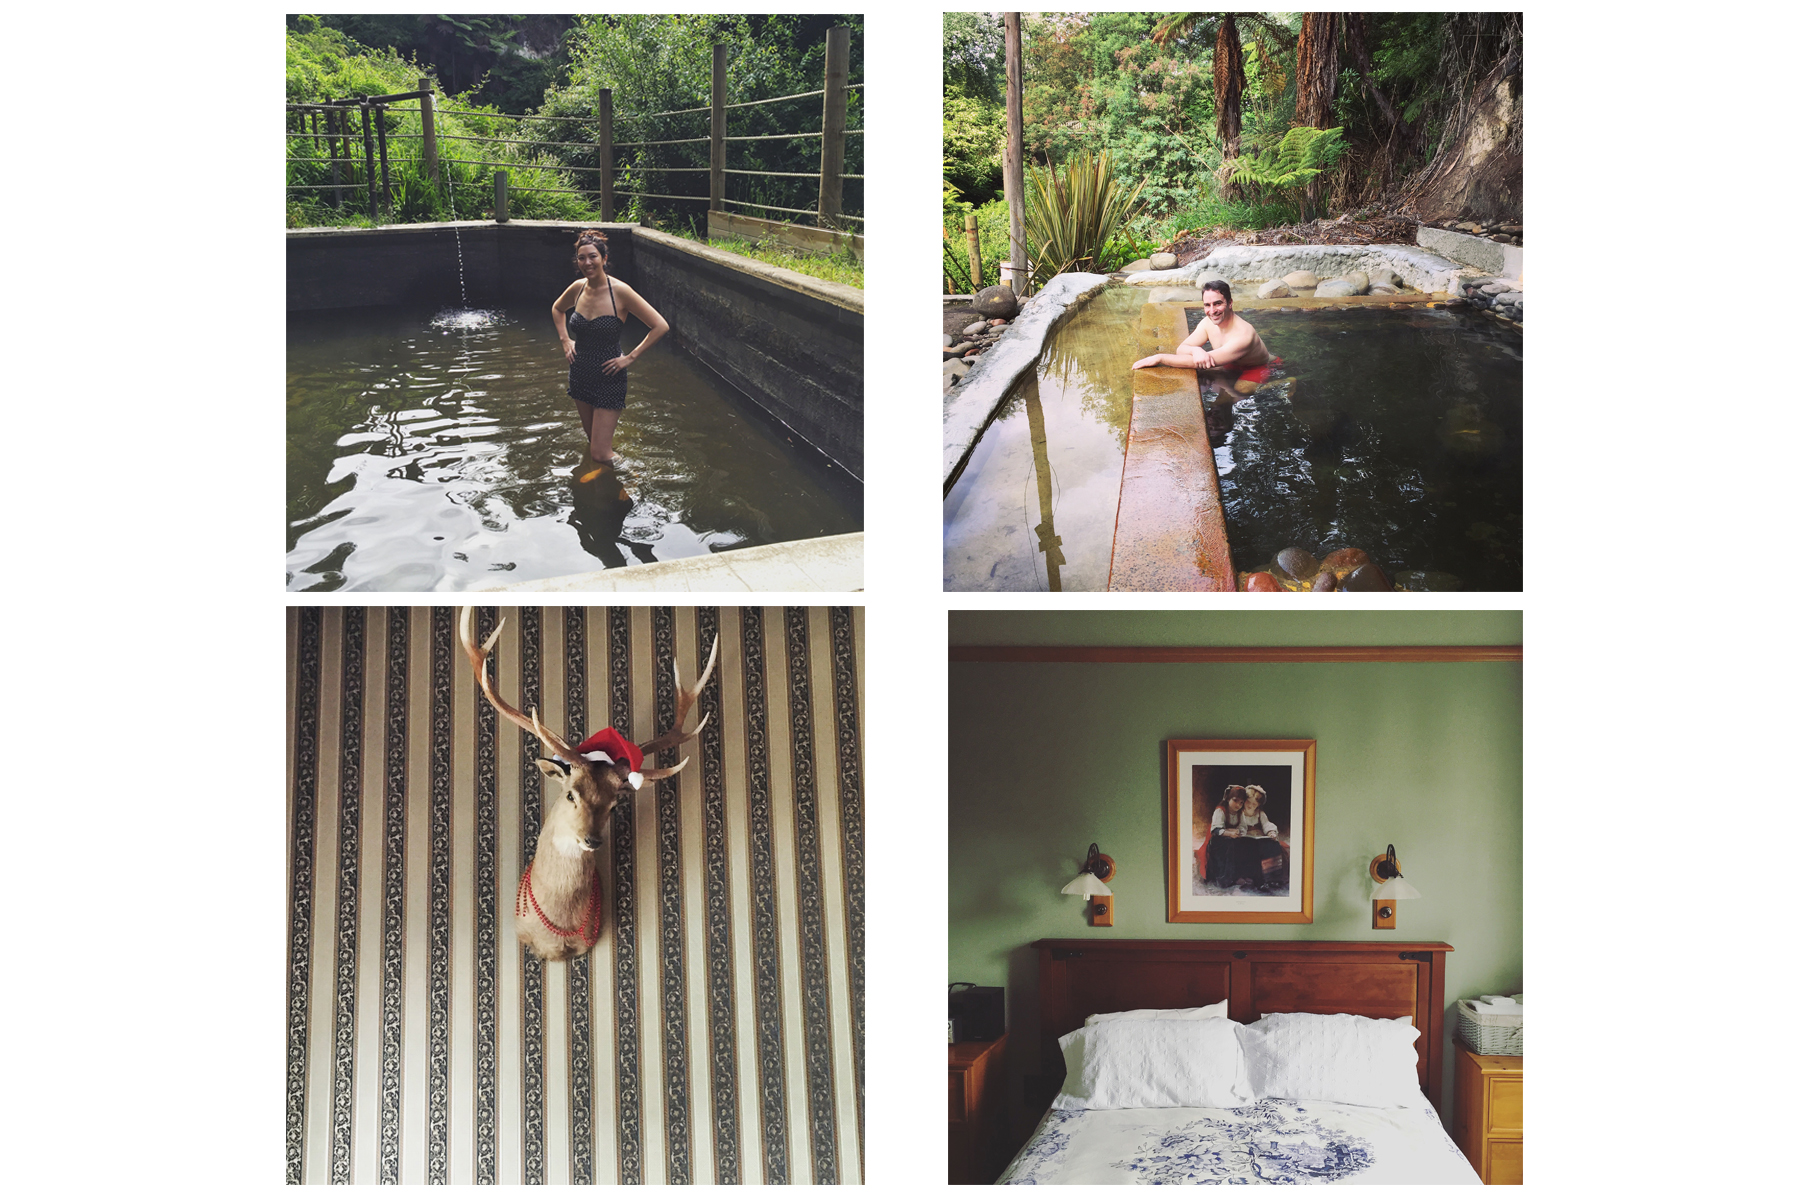 Rustic design and hot springs at Okoroire Hot Springs Hotel